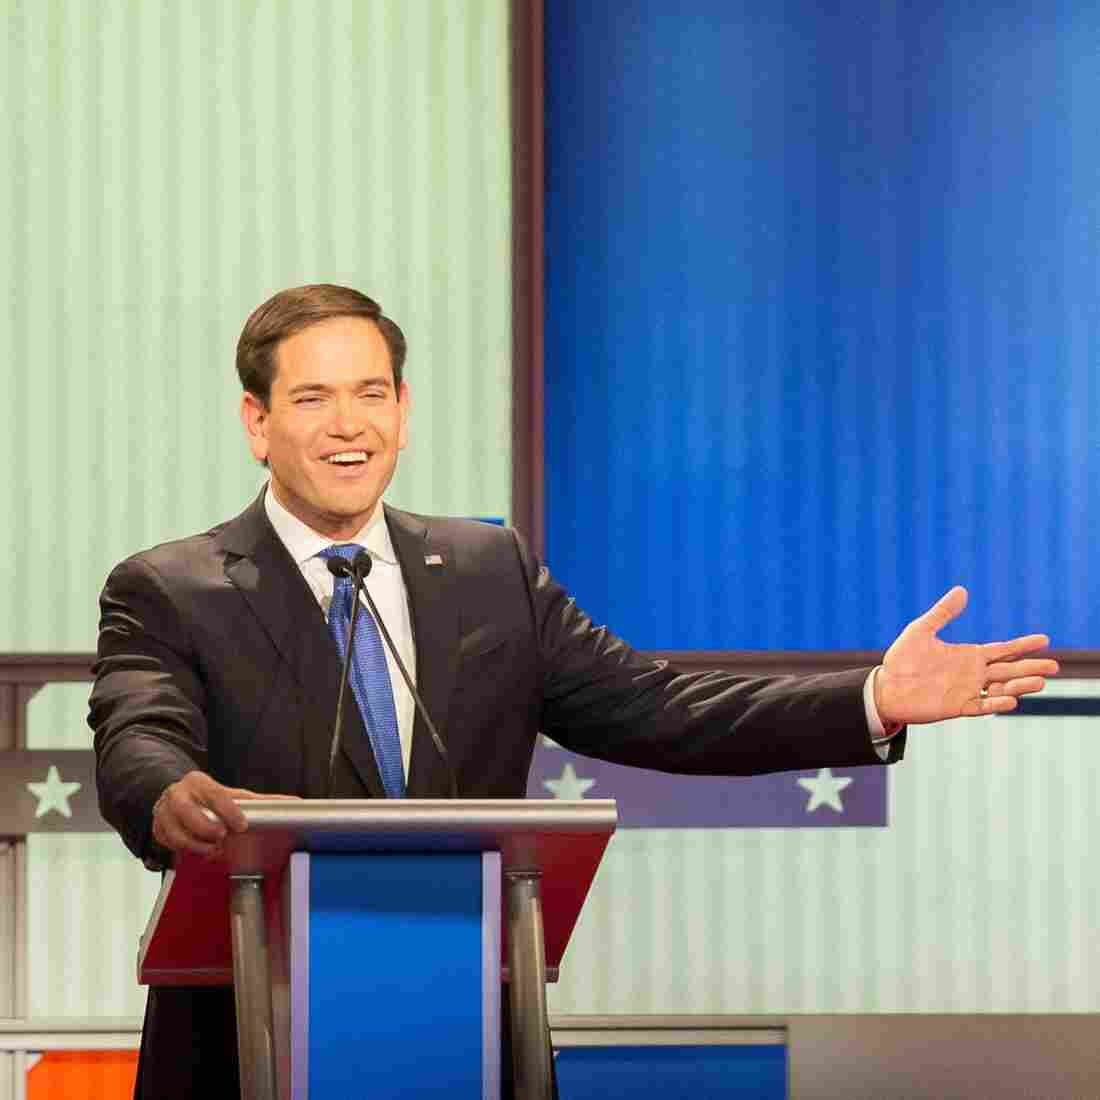 Marco Rubio Defends His 'Small Hands' Criticism Of Donald Trump